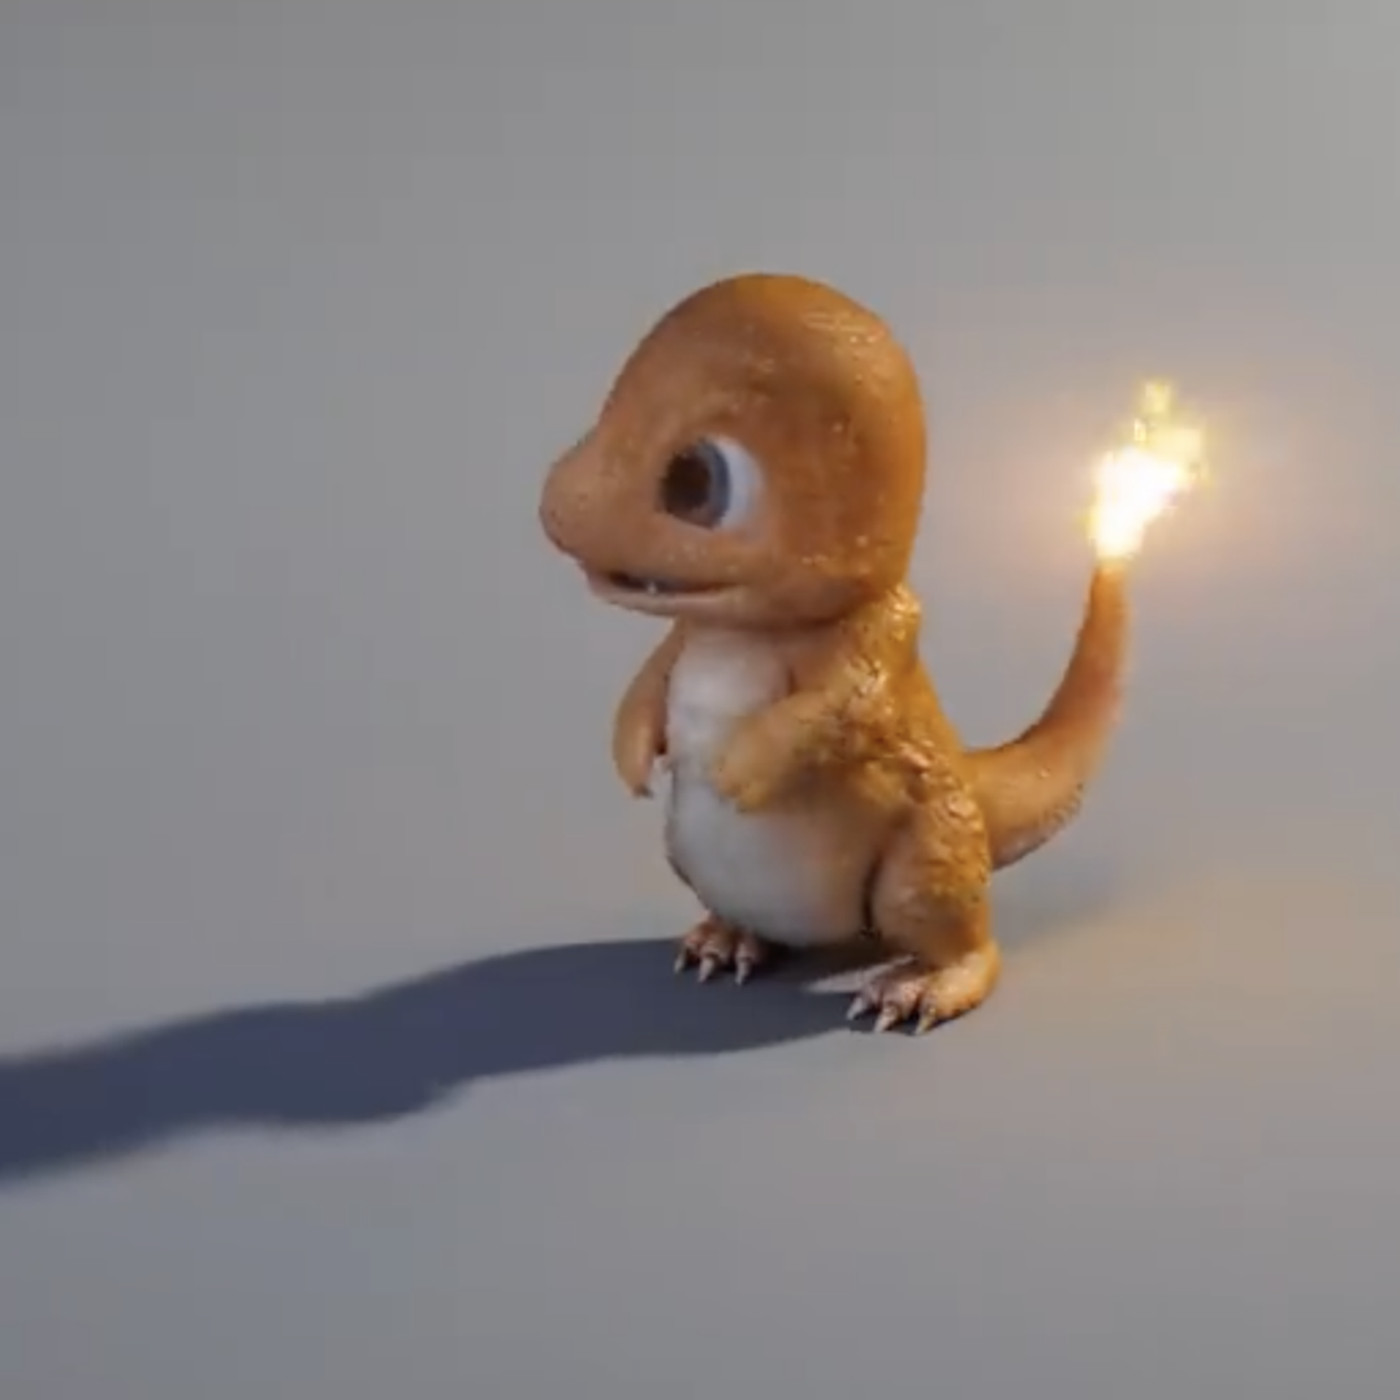 Detective Pikachu casting video is chock full of wonderful